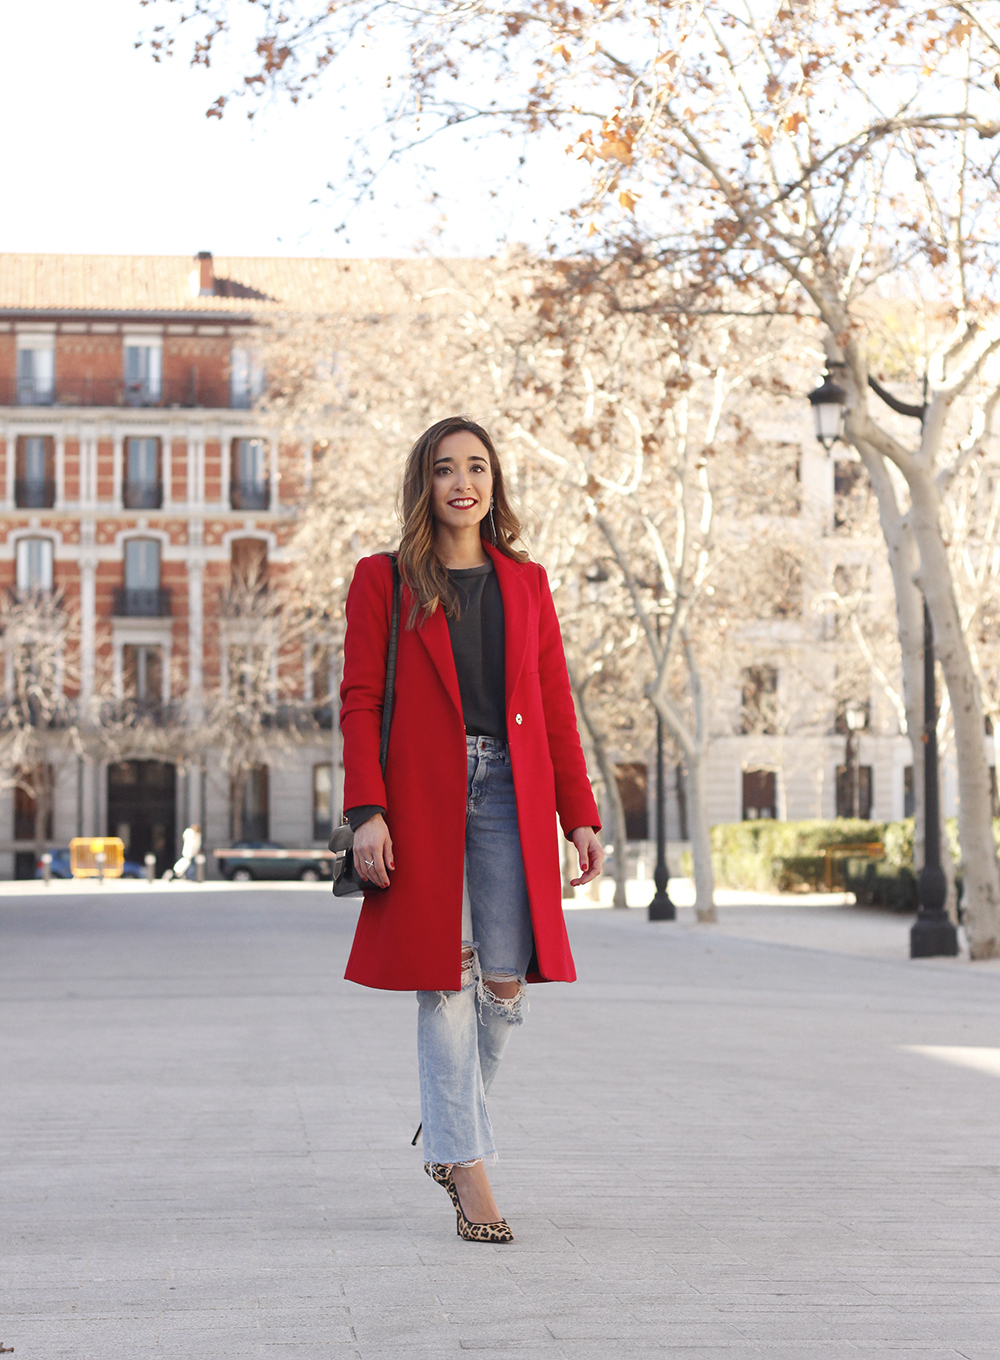 red coat givenchy bag ripped jeans leopard heels winter outfit look de invierno06